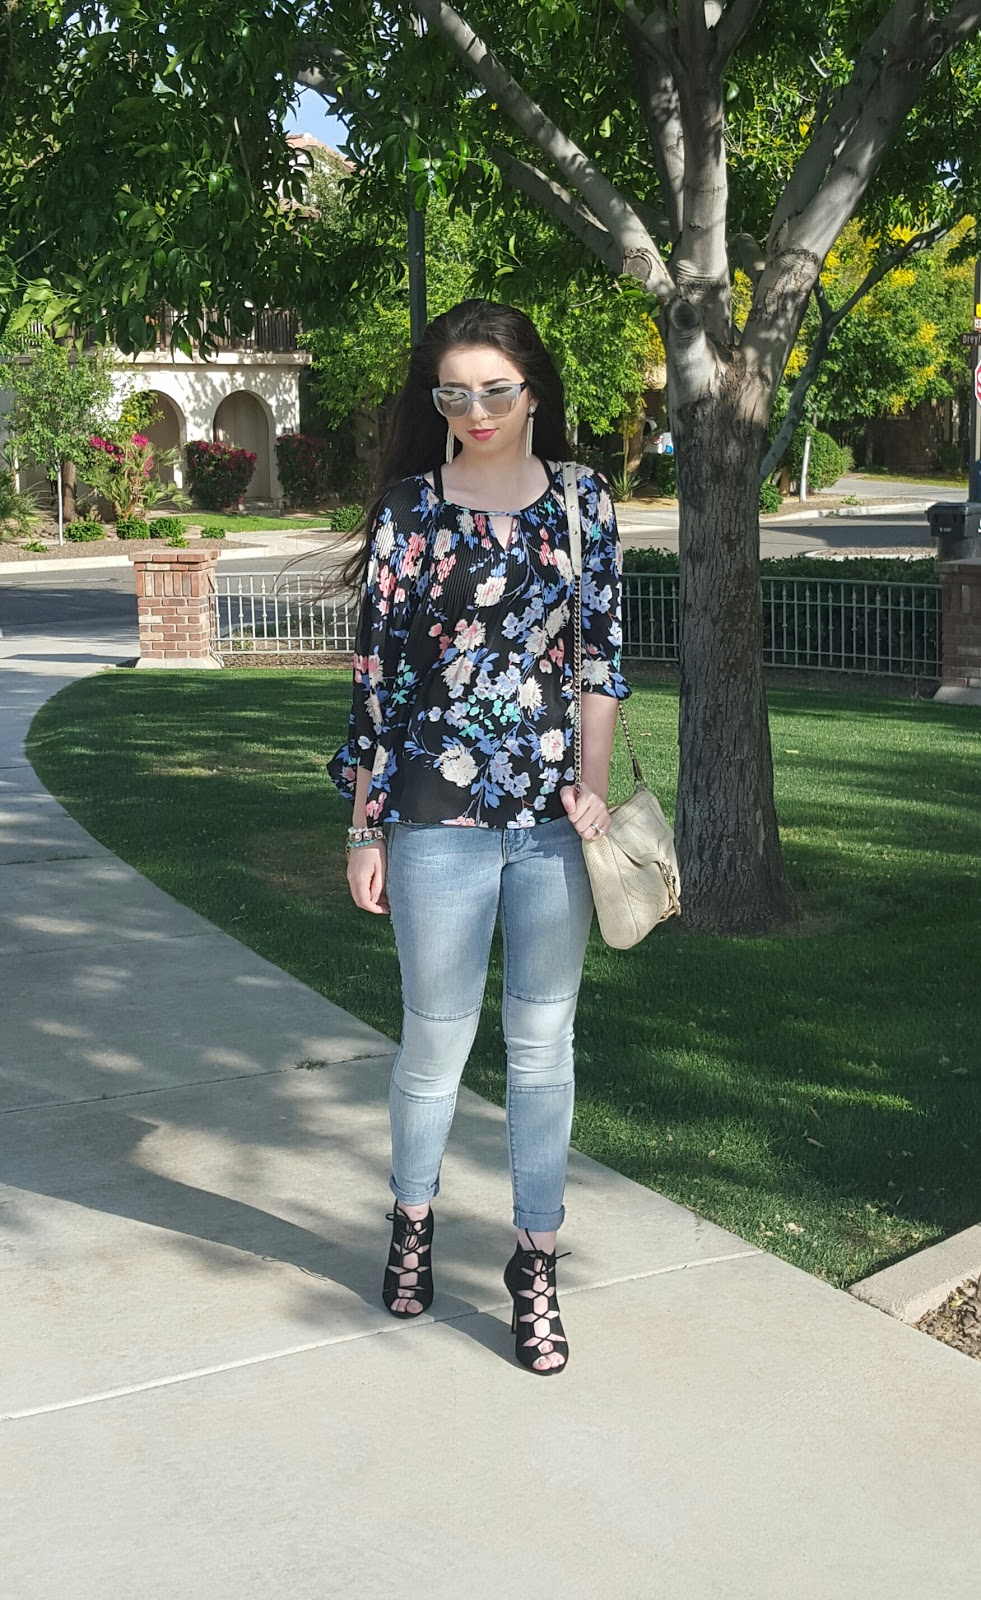 pastel florals and lace up sandals- Spring fashion